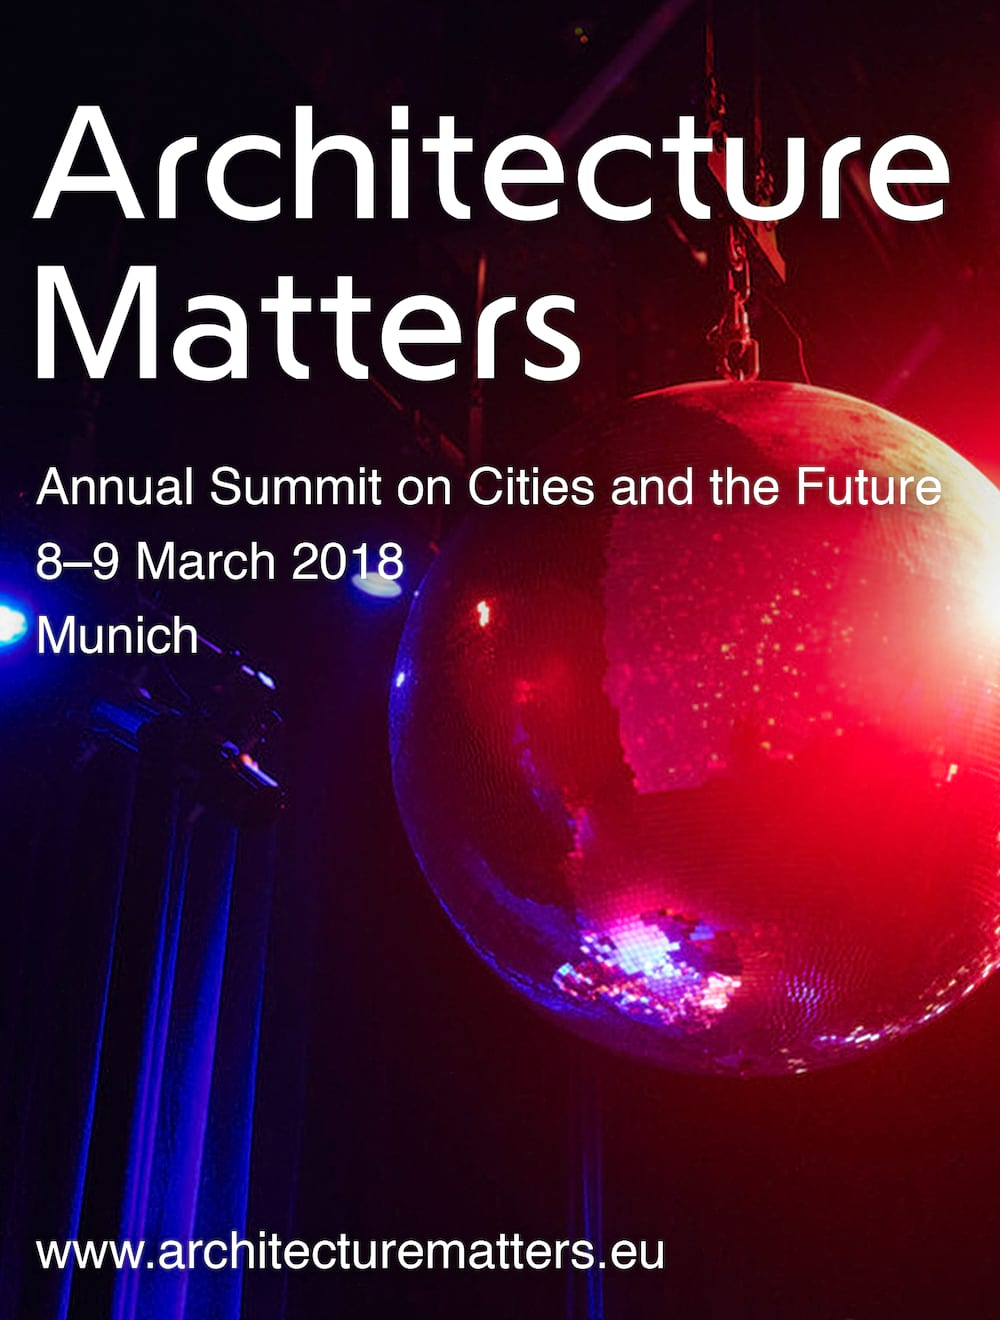 architecture-matters-2018-keyvisual2-high-1500px